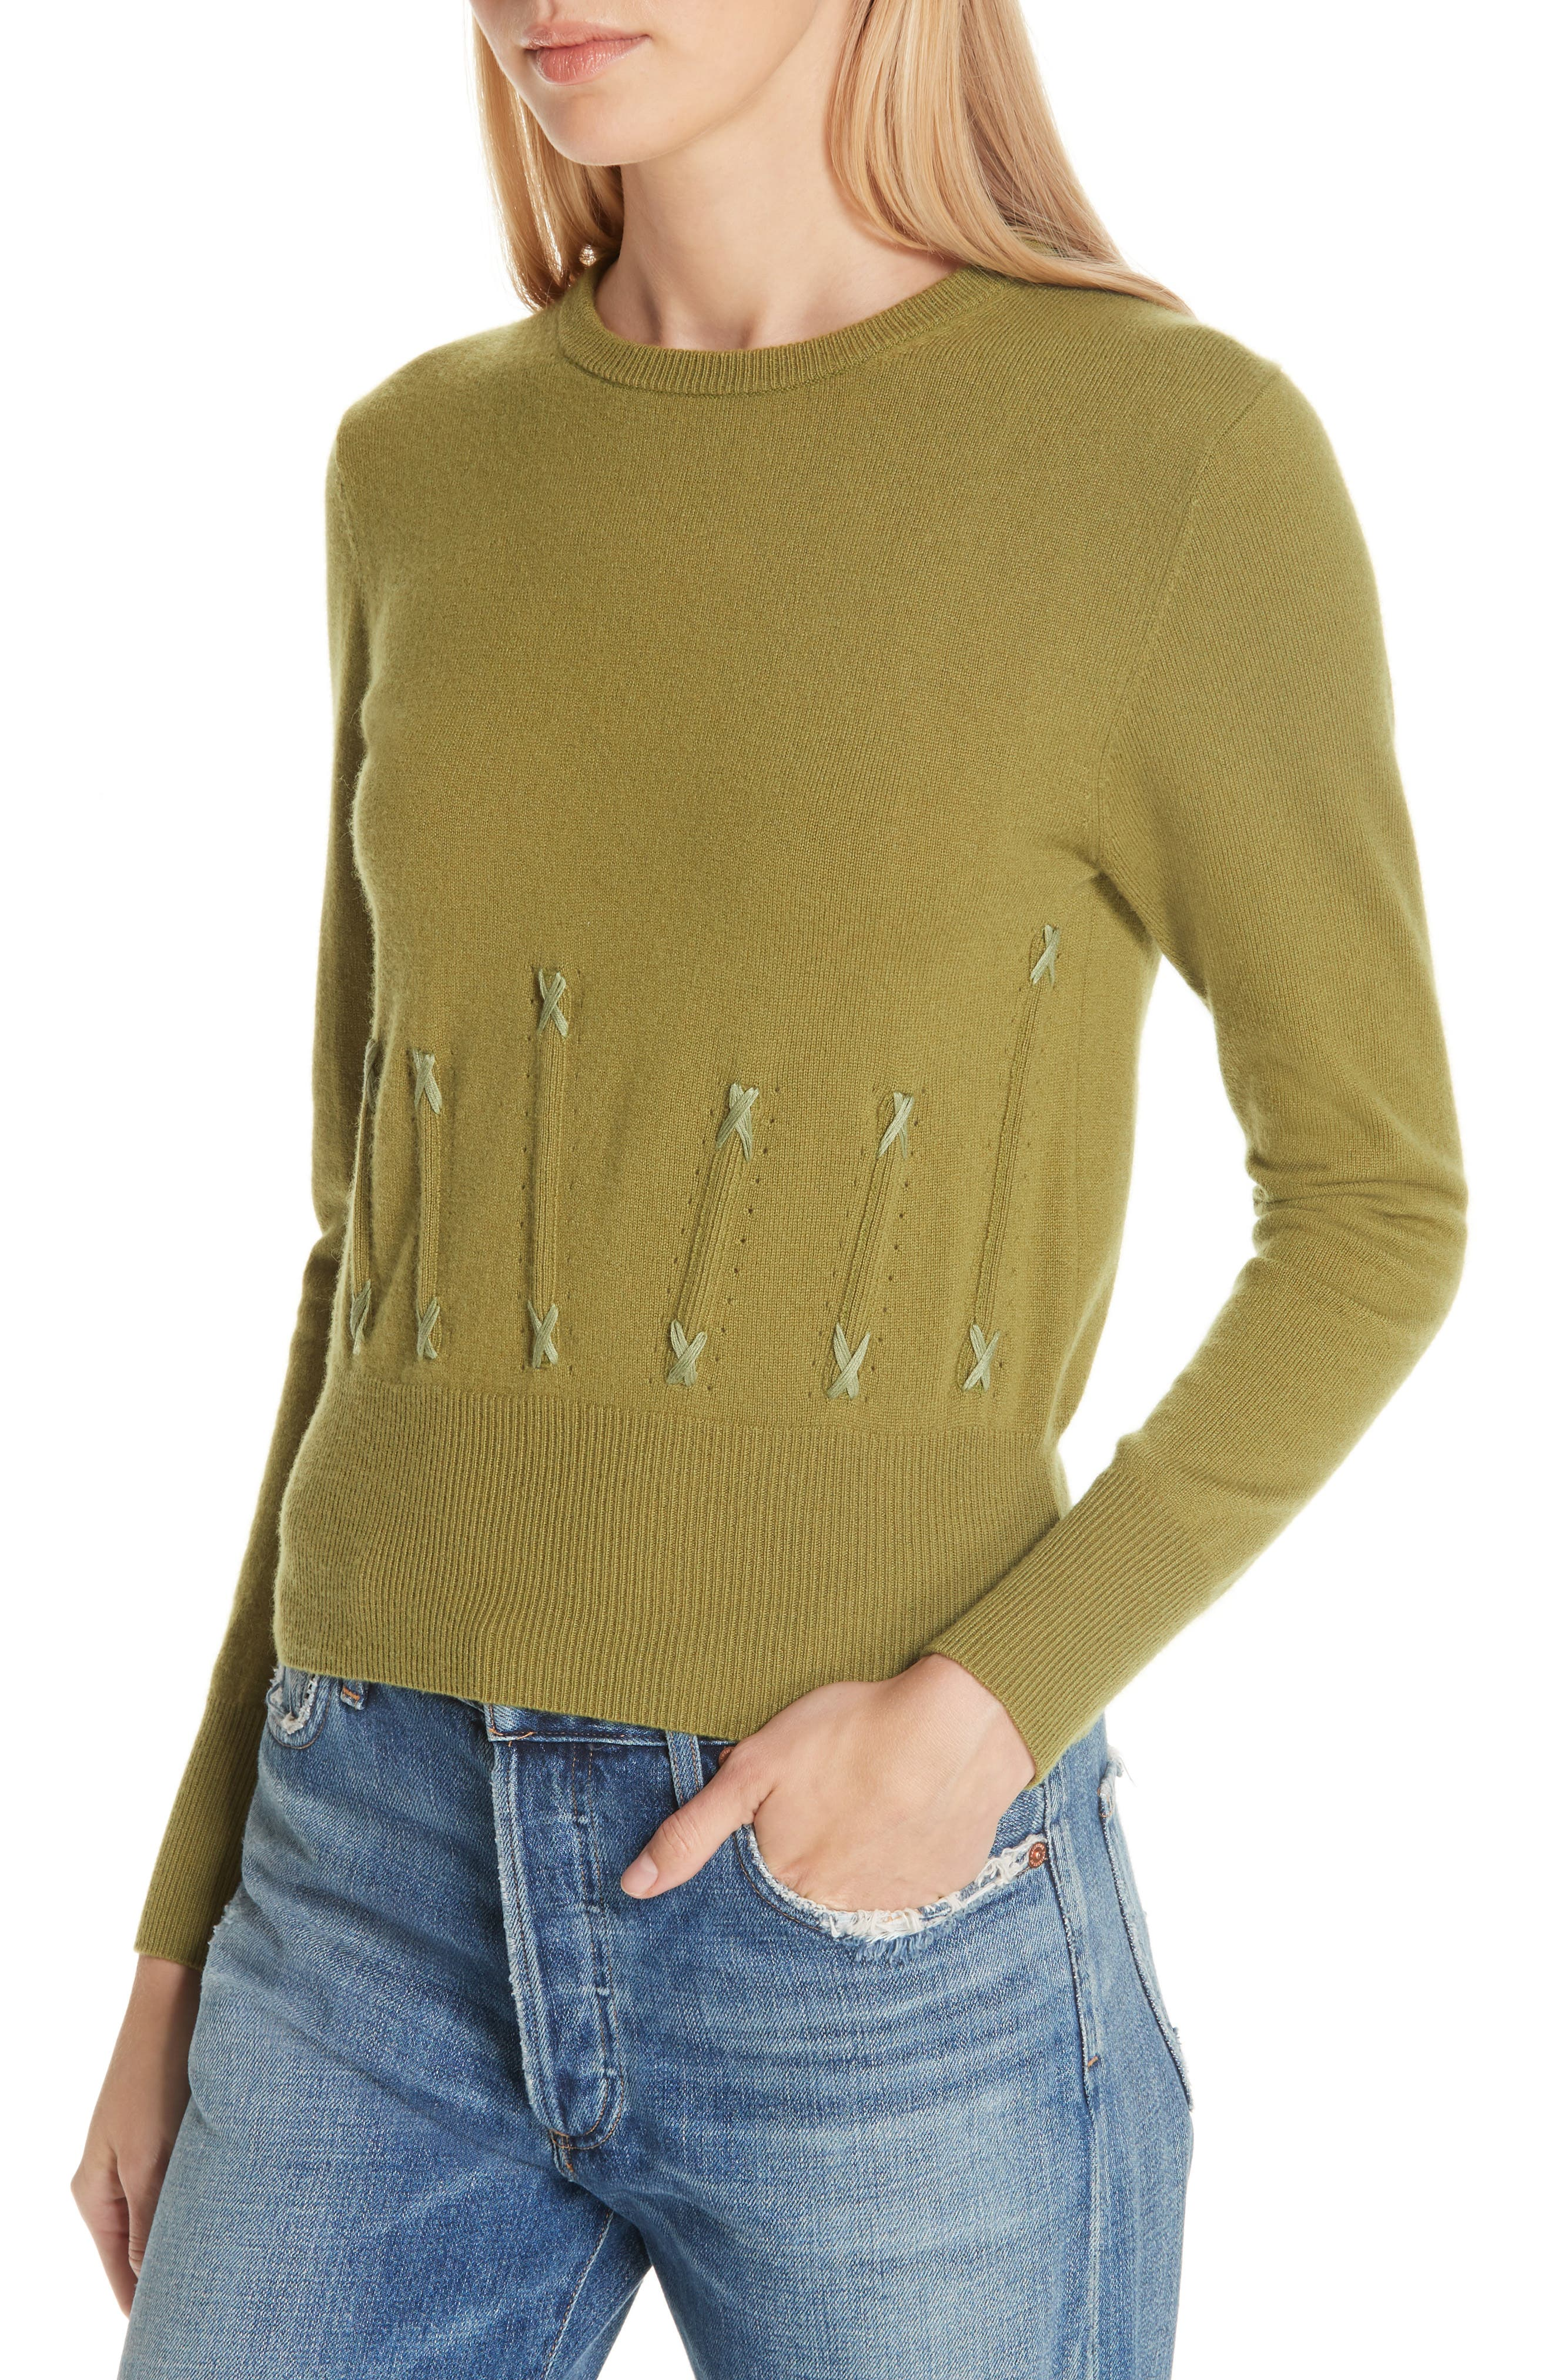 Cailyn Corset Knit Cashmere Sweater,                             Alternate thumbnail 4, color,                             GREEN